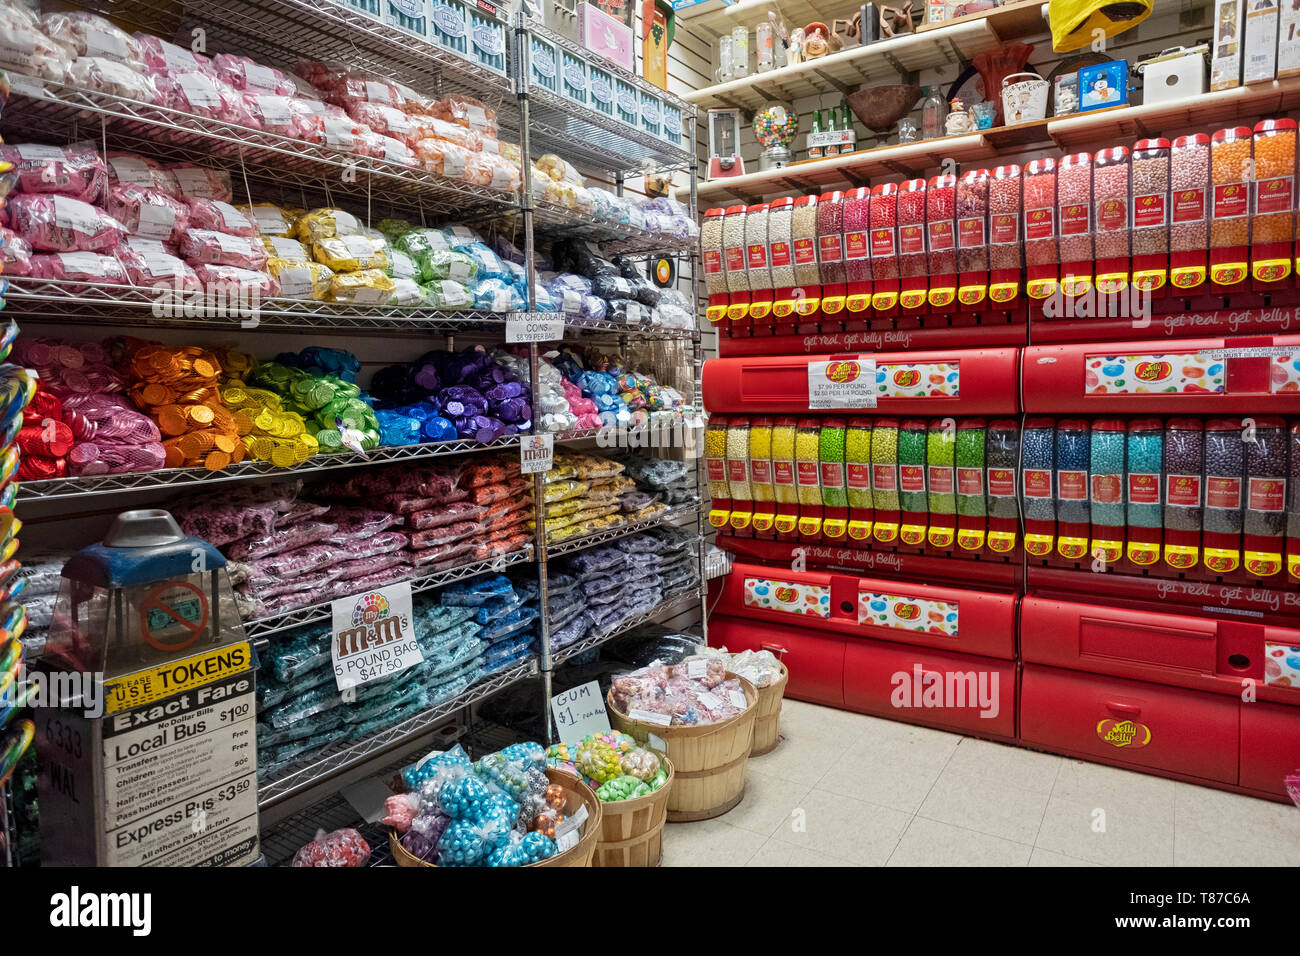 A corner of the iconic ECONOMY CANDY store on the lower east side with chocolates, jelly beans and a vintage token machine. New York City. Stock Photo